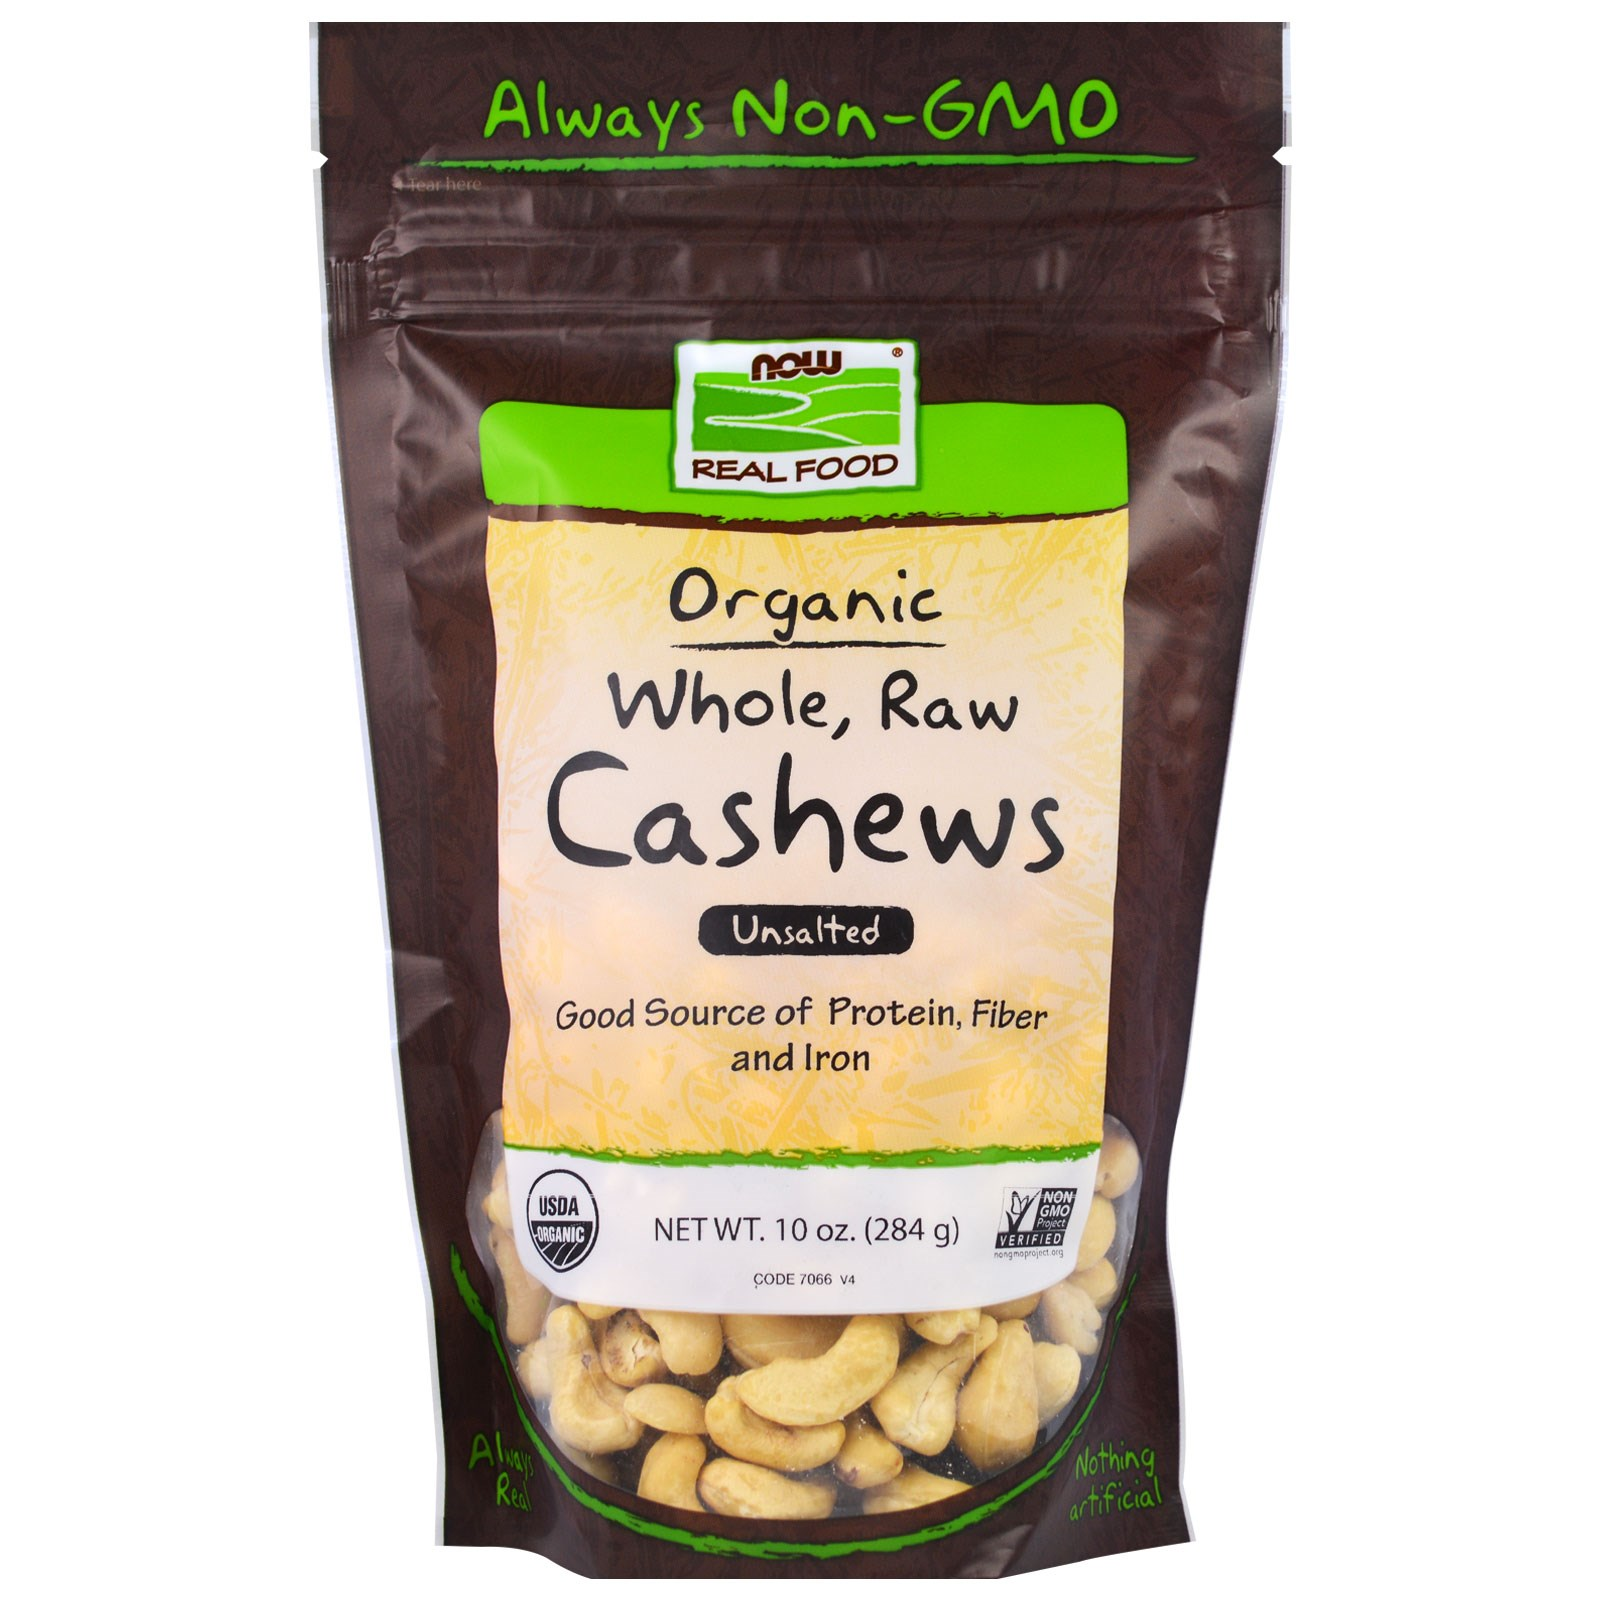 NOW Foods, Real Food, Organic, Whole, Raw Cashews, Unsalted, 10 oz (pack of 12)